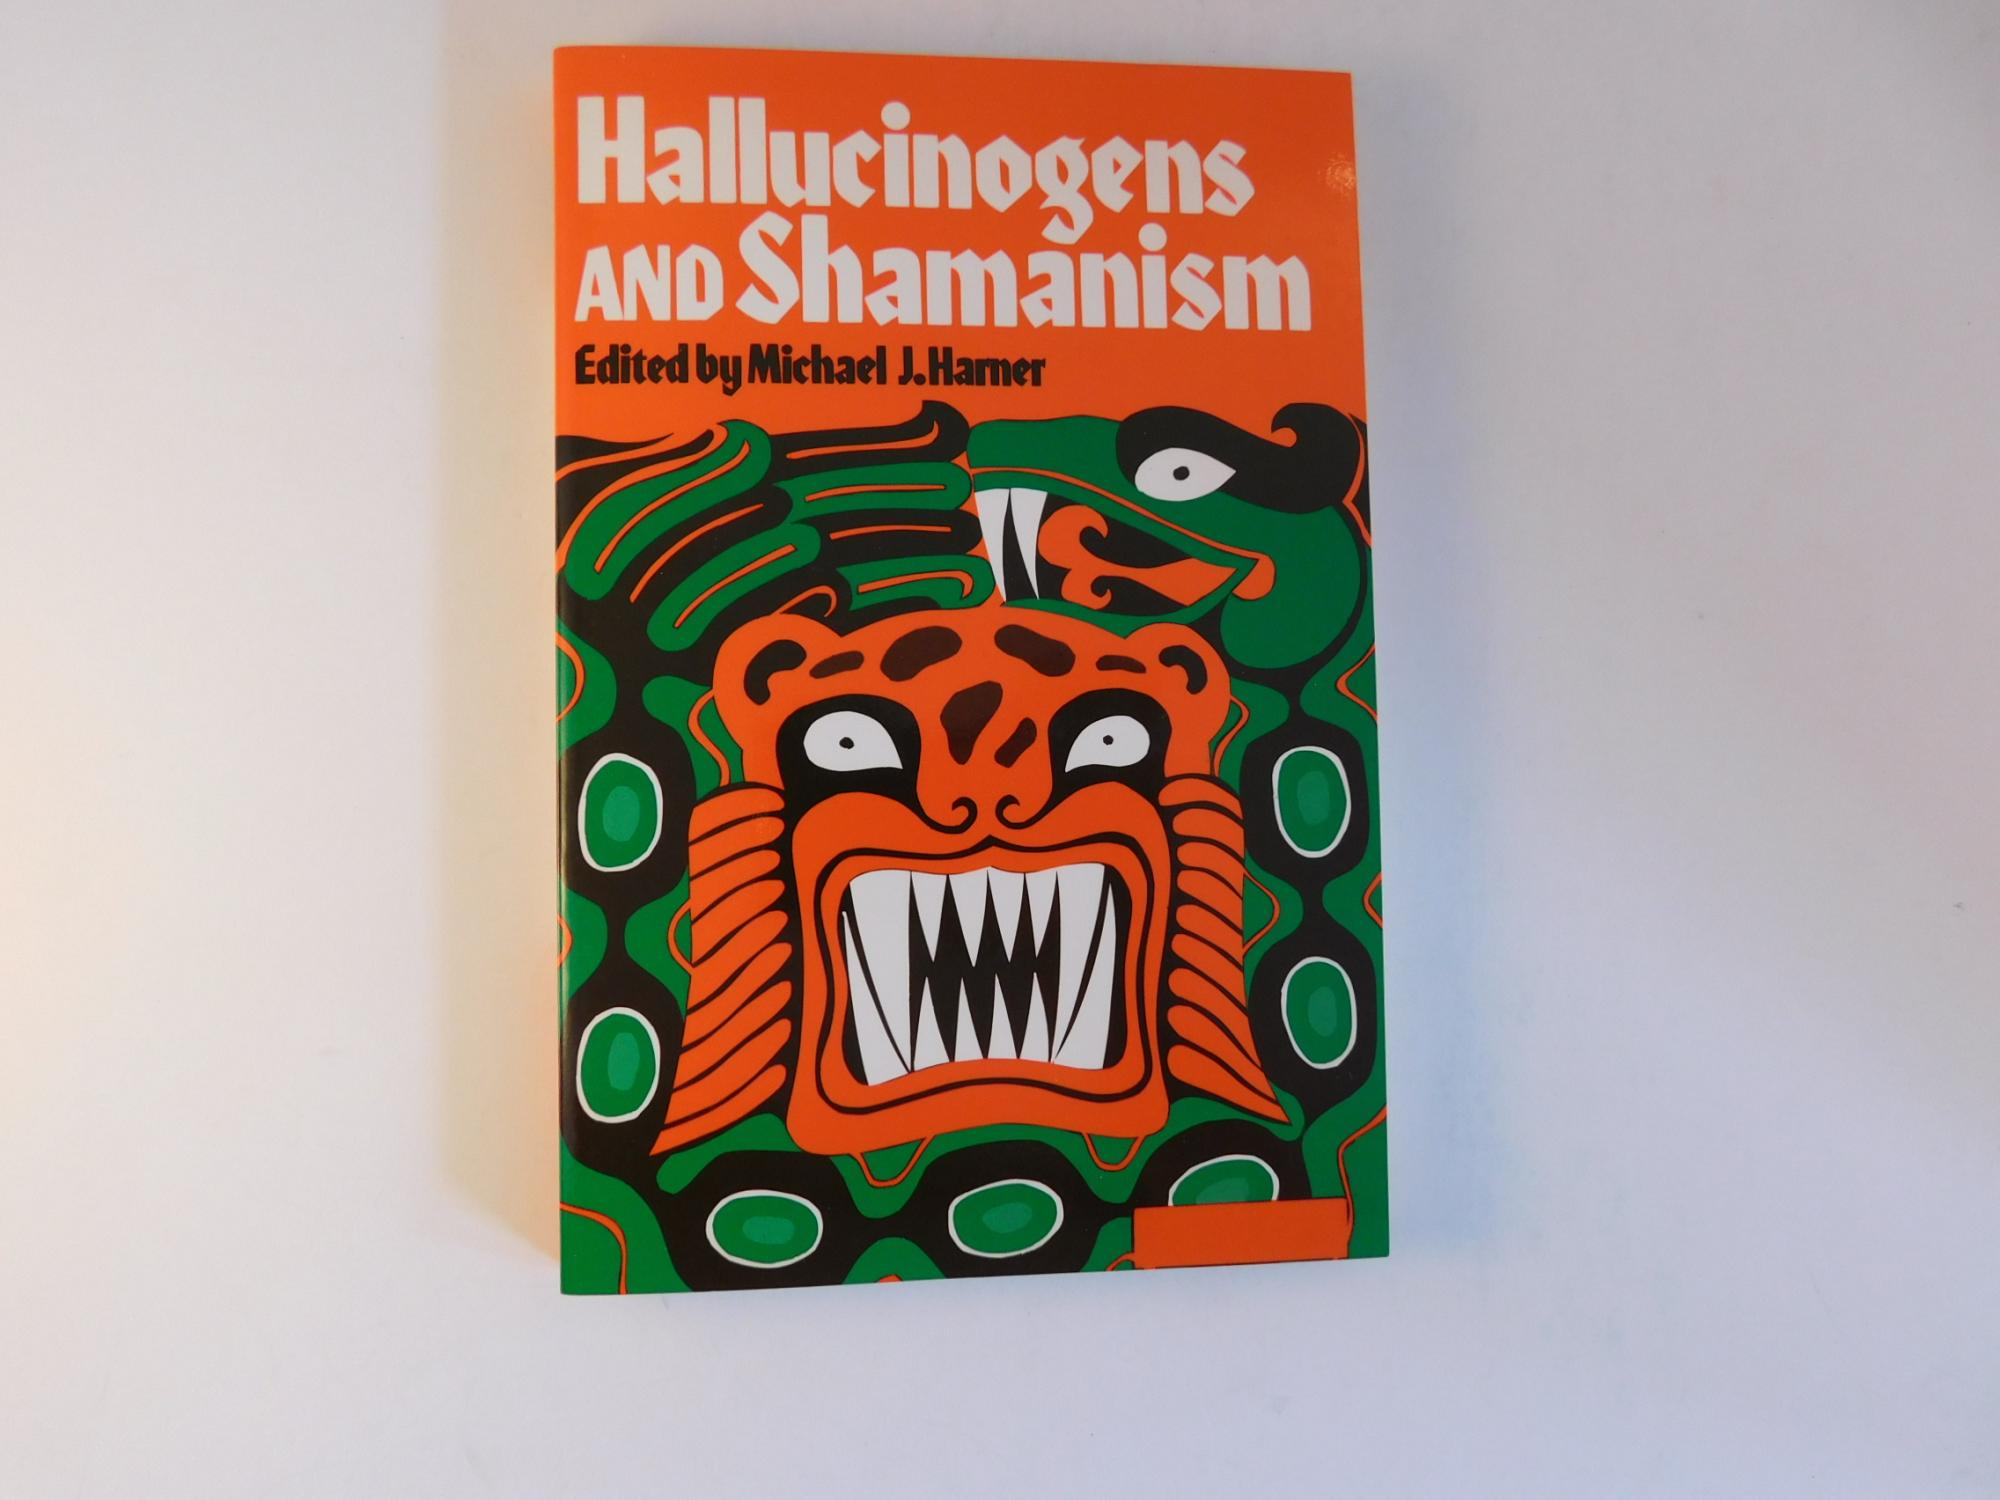 Hallucinogens and Shamanism (Galaxy Books) - Michael J. Harner